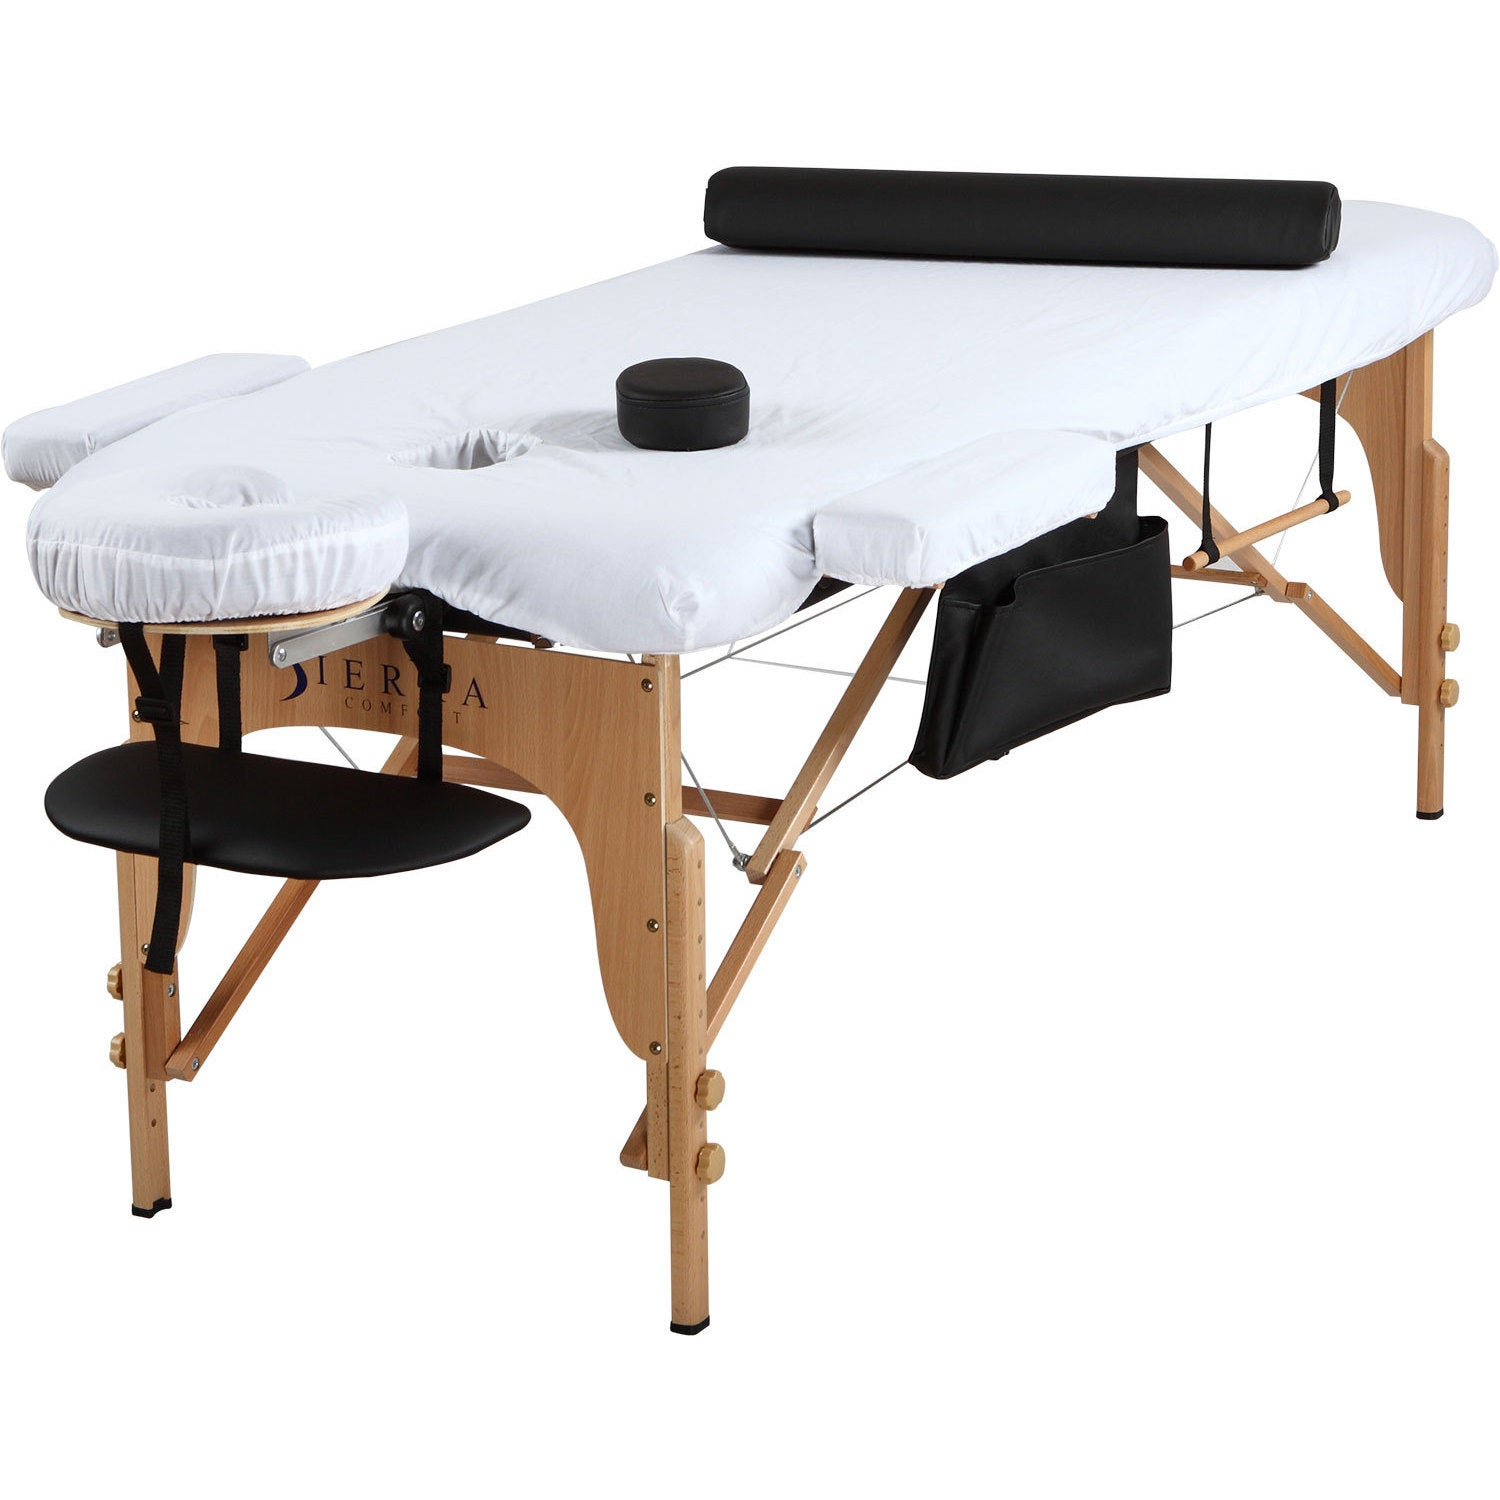 Sierra comfort aluminum portable massage table